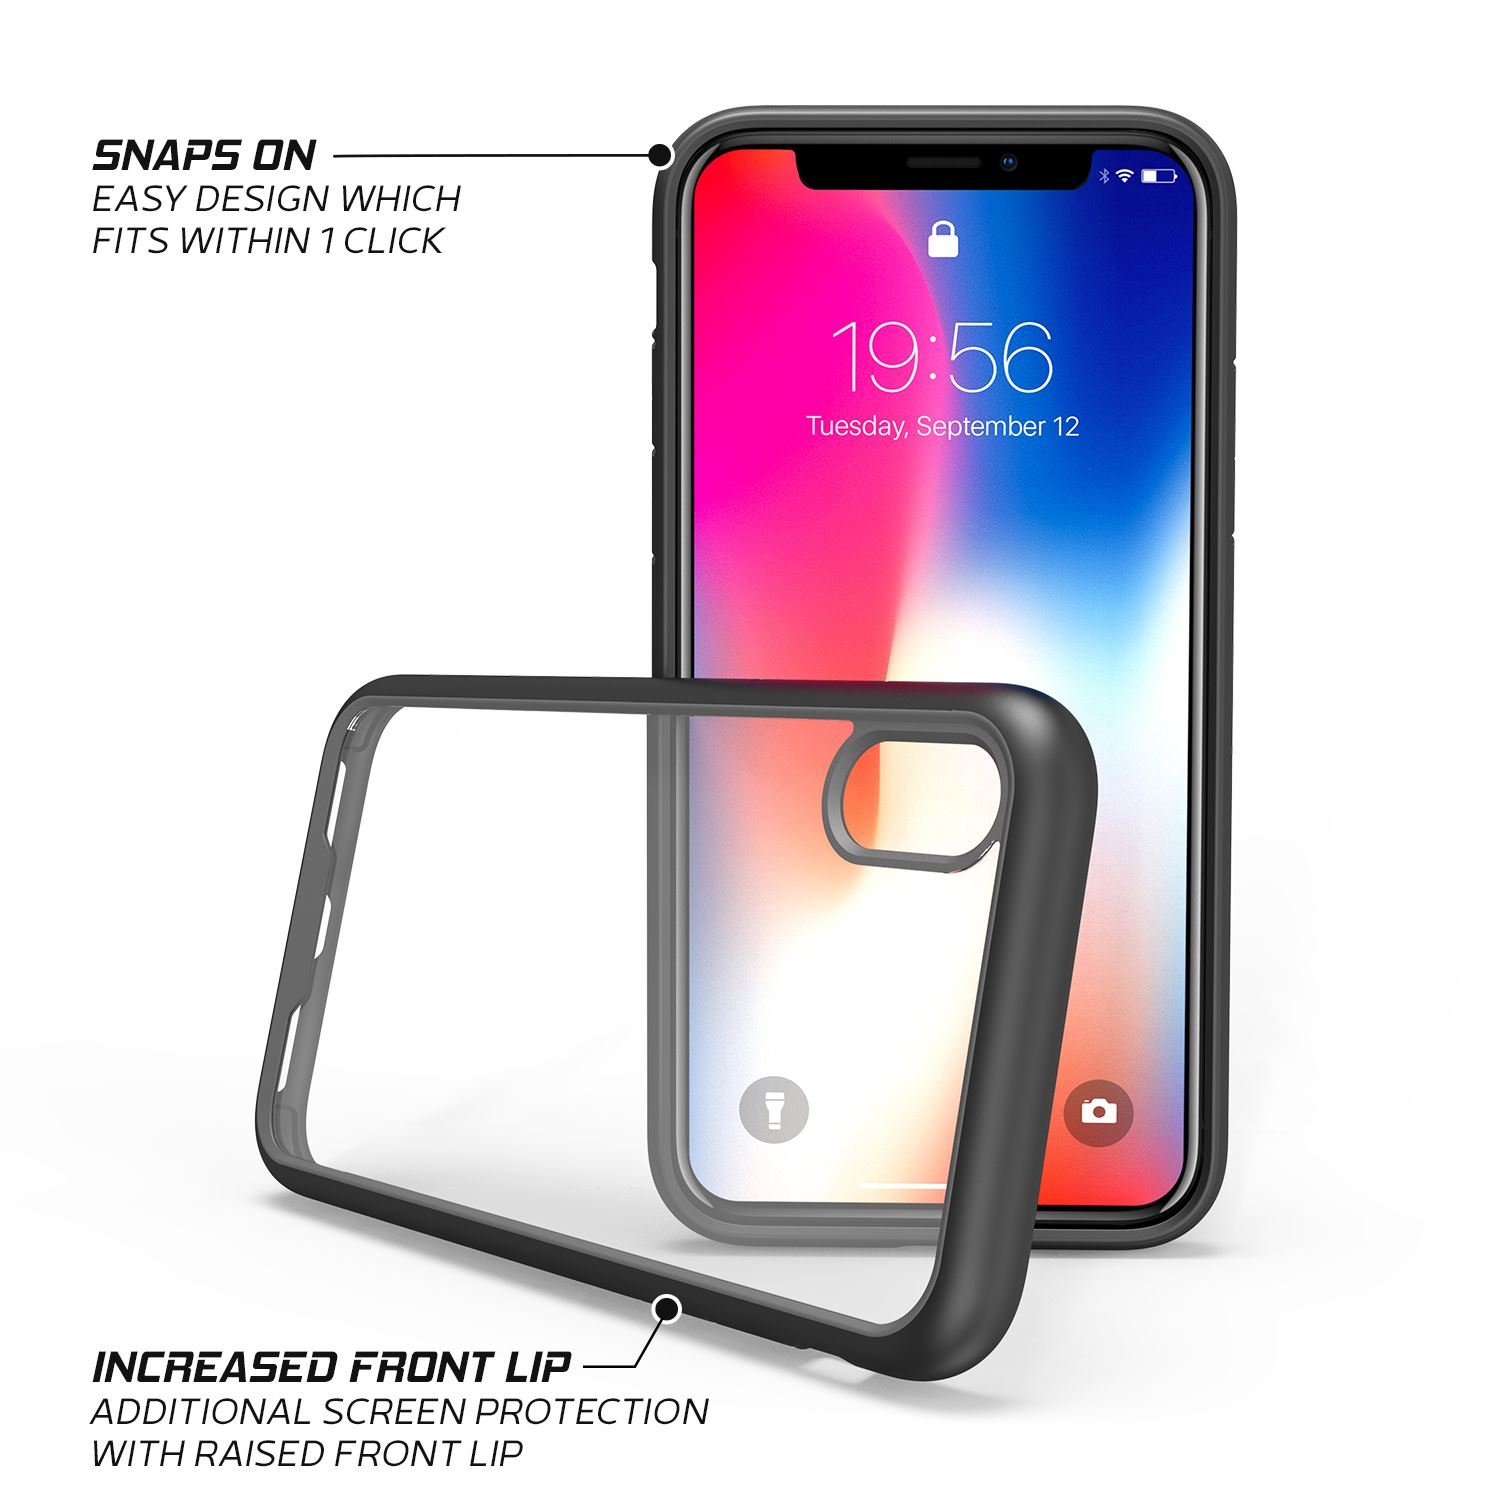 thumbnail 9 - For Apple iPhone XR Xs Max X 8 7 Plus 6 Se 2020 Case Cover Clear Shockproof Thin